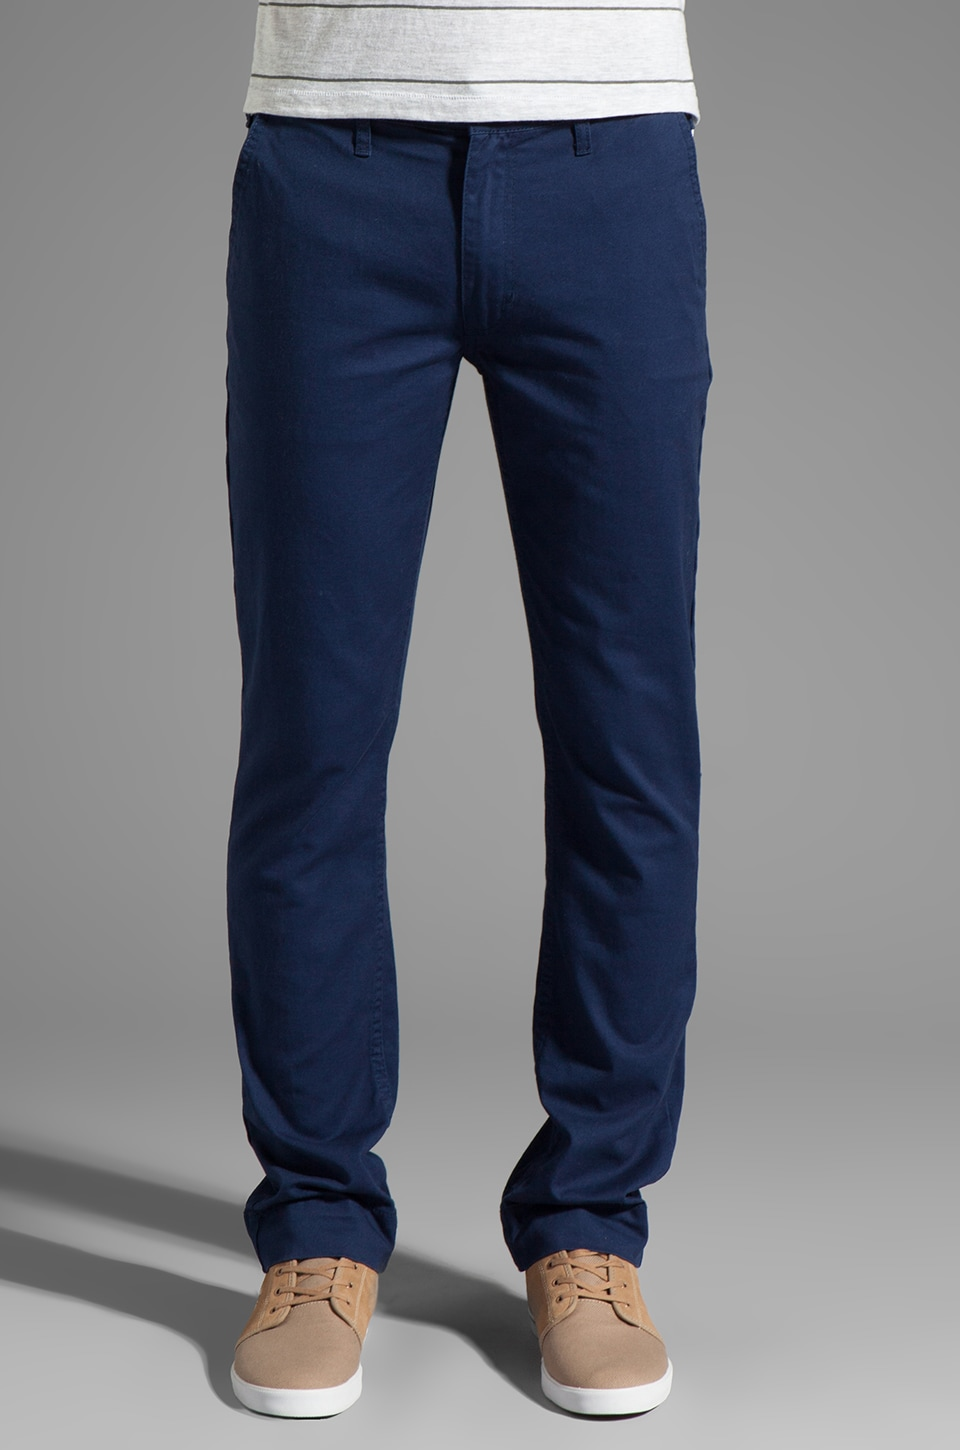 Cheap Monday Slim Chino in Navy